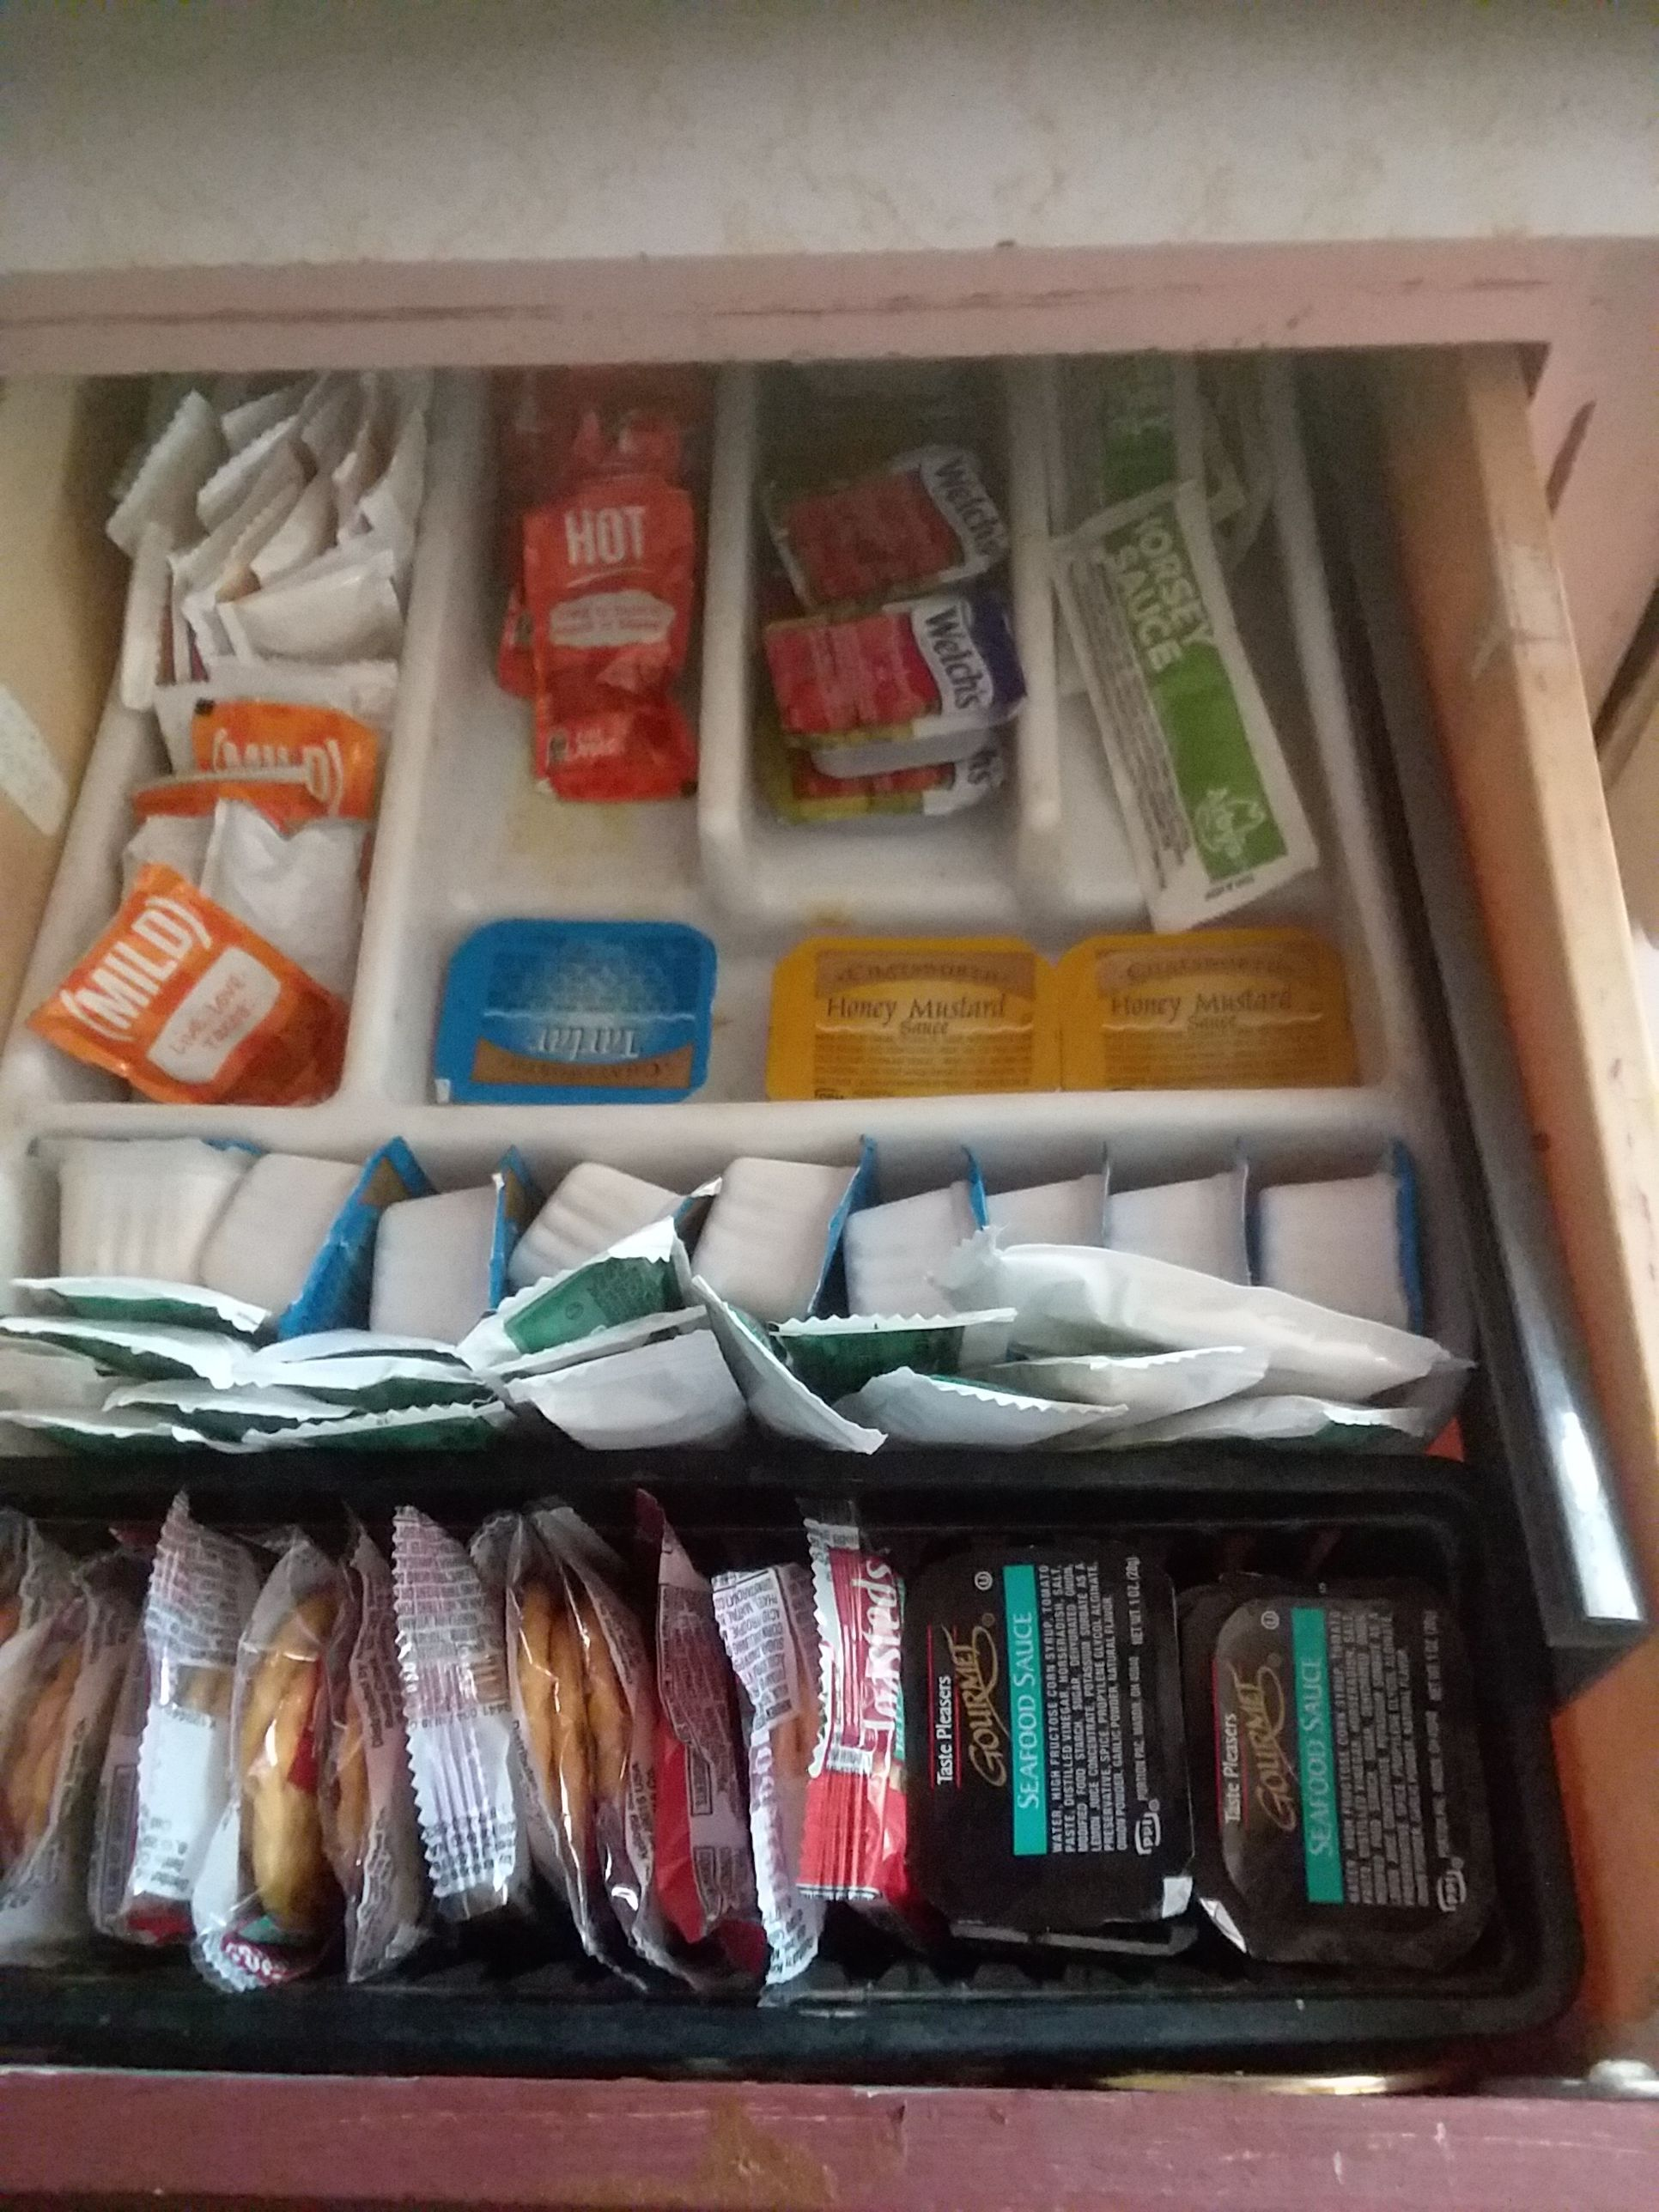 Merveilleux   Totalement gratuit  Condiments drawer  Suggestions,  #Condiments #Condimentsdrawer #drawer #gratuit #Merveilleux #Suggestions #Totalement, Voici mon tiroir à condiments J'utilise un plateau supplémentaire et un porte-couverts A. Manhunter sauce barbecue, le ketchup, manhunter moutarde, le chutney, les relishs, manhunter salsa, les cornichons, les olives et la mayonnaise entrent t...